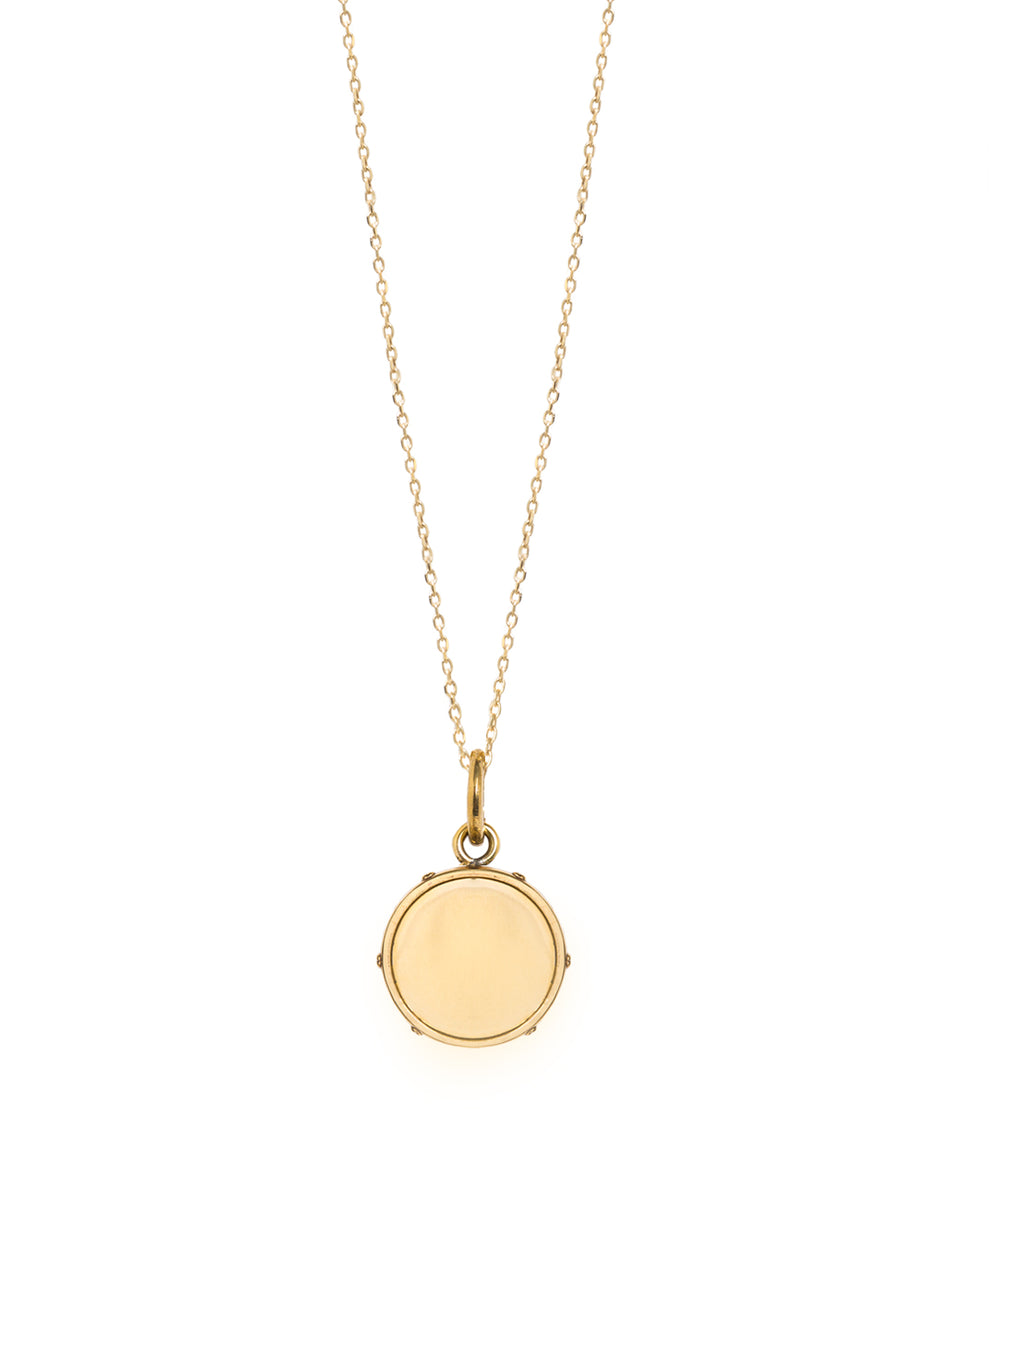 Small Gold Disc Necklace by Tilly Sveaas